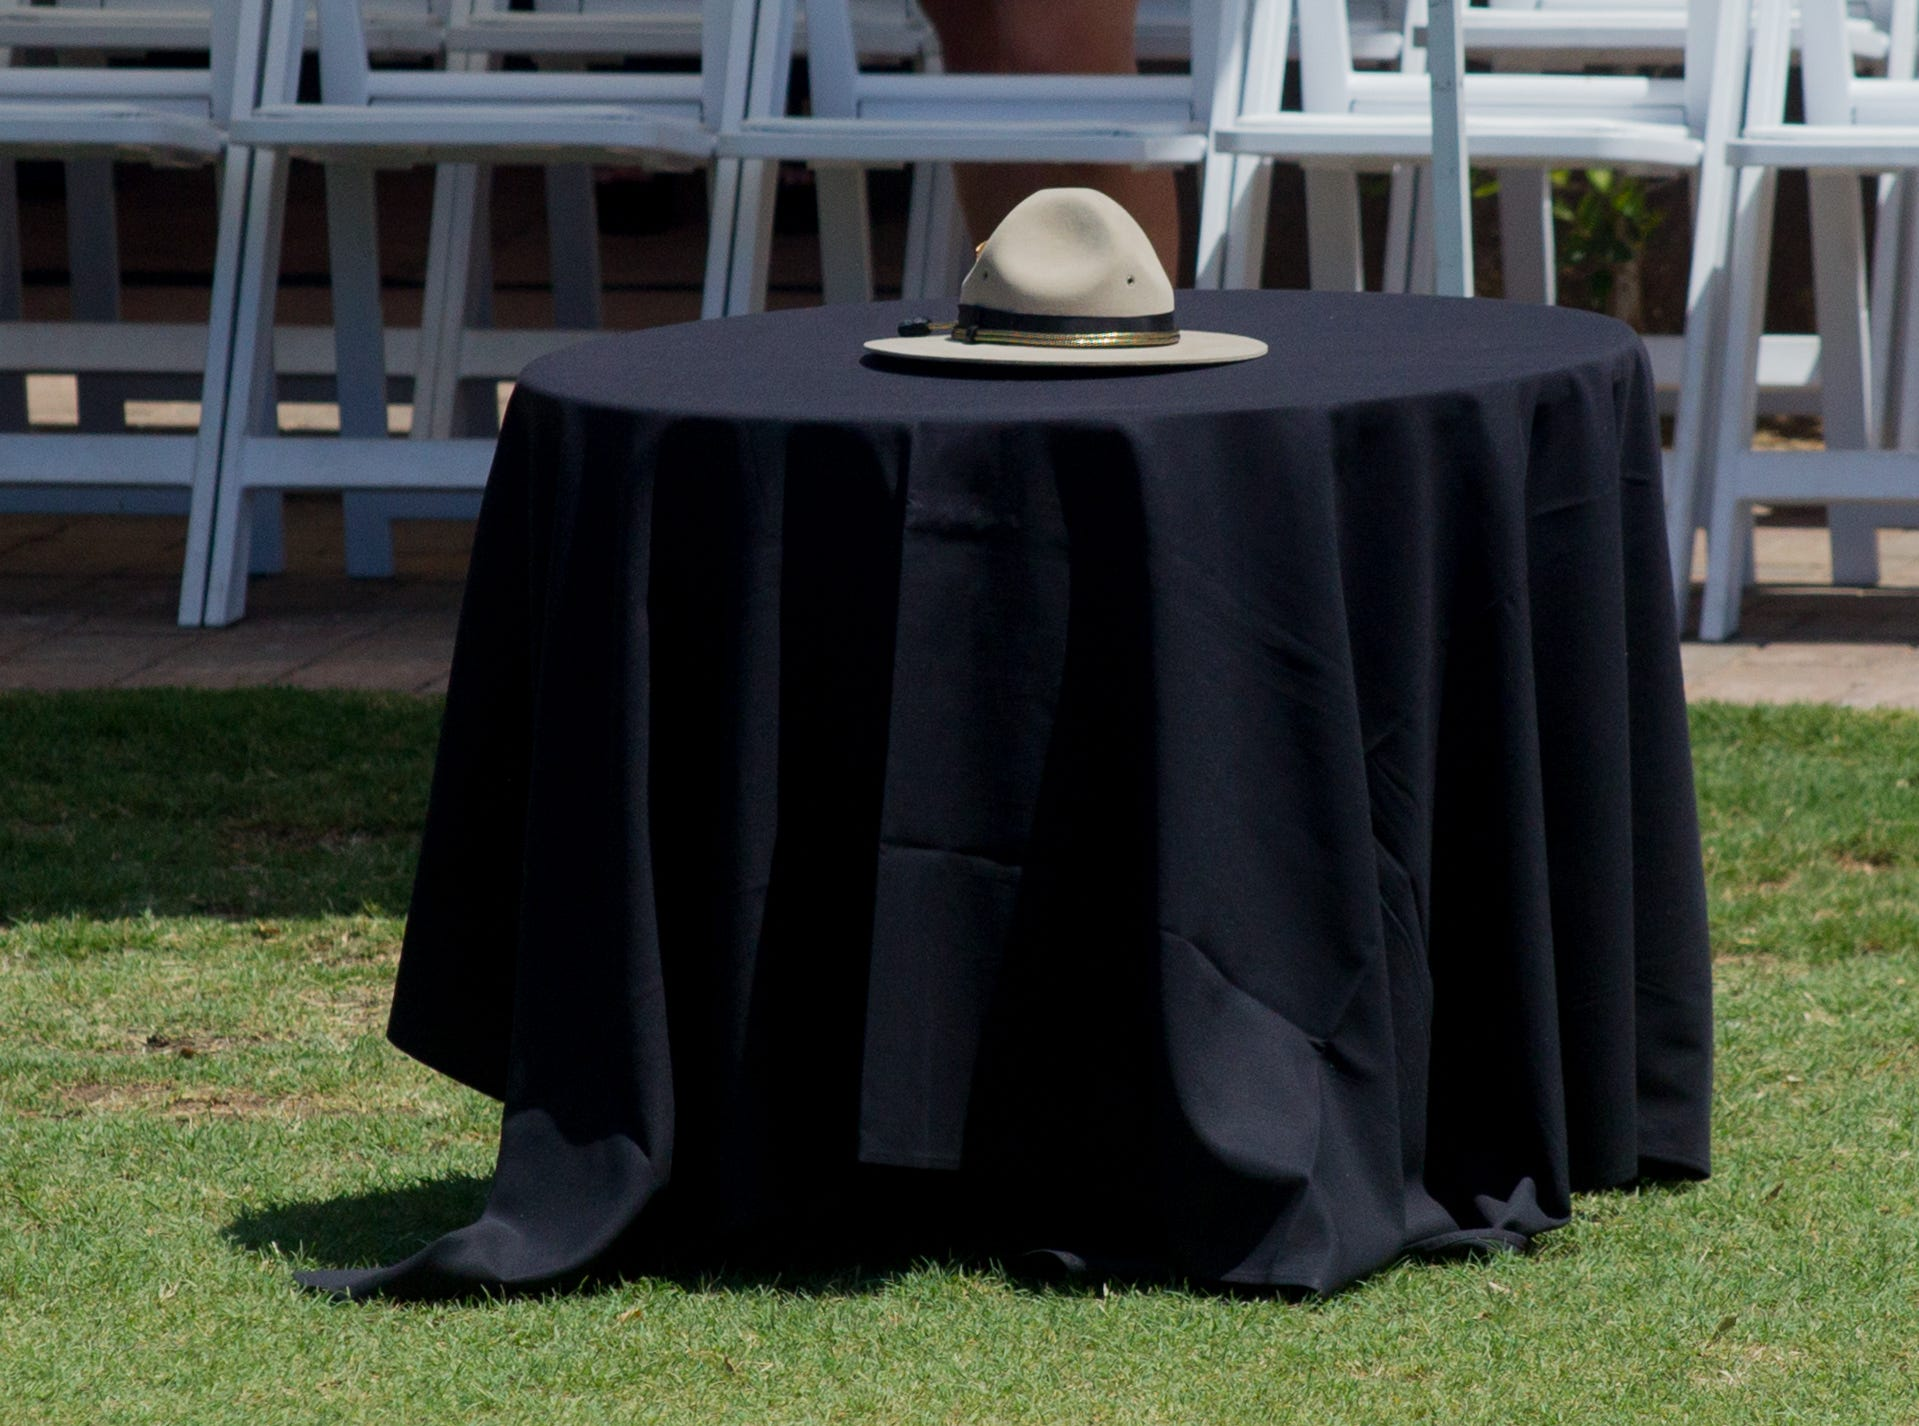 Fallen DPS Trooper Tyler Edenhofer's hat sits on a table on Aug. 3, 2018 during his funeral at Christ's Church of the Valley in Peoria.